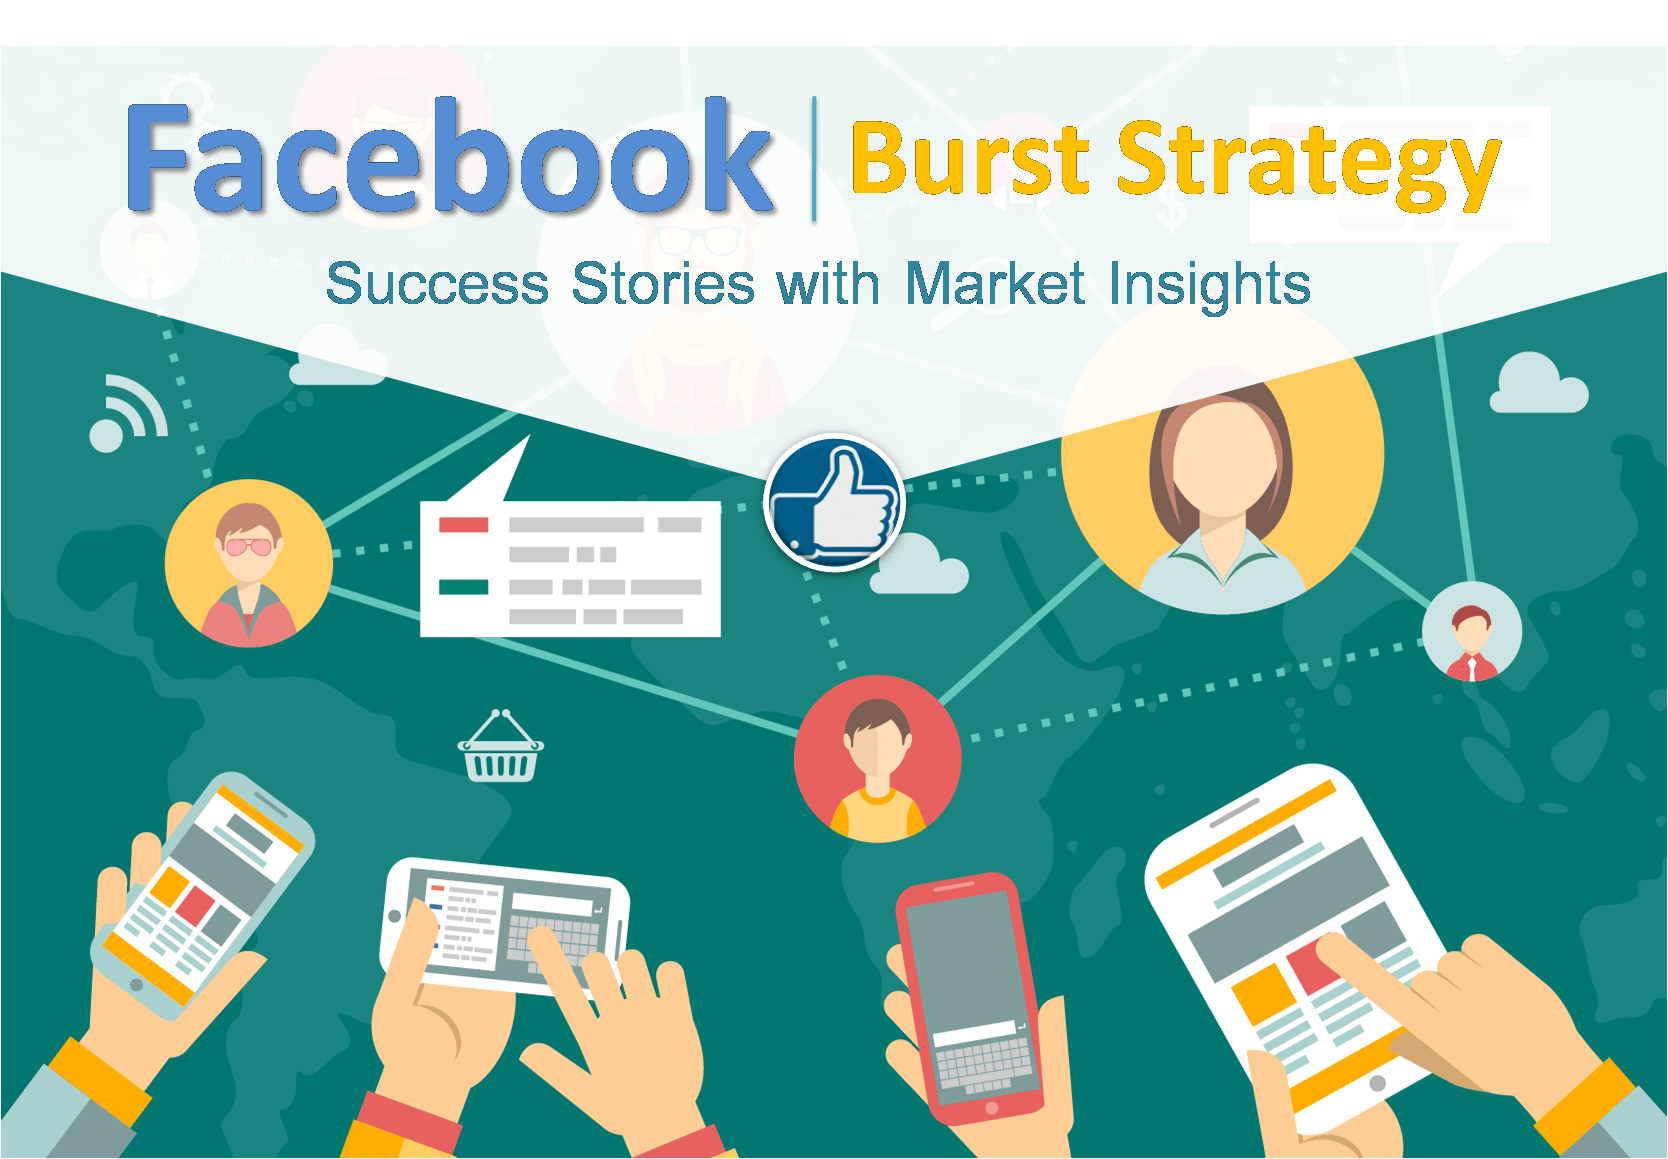 Facebook Burst Strategy Success Stories